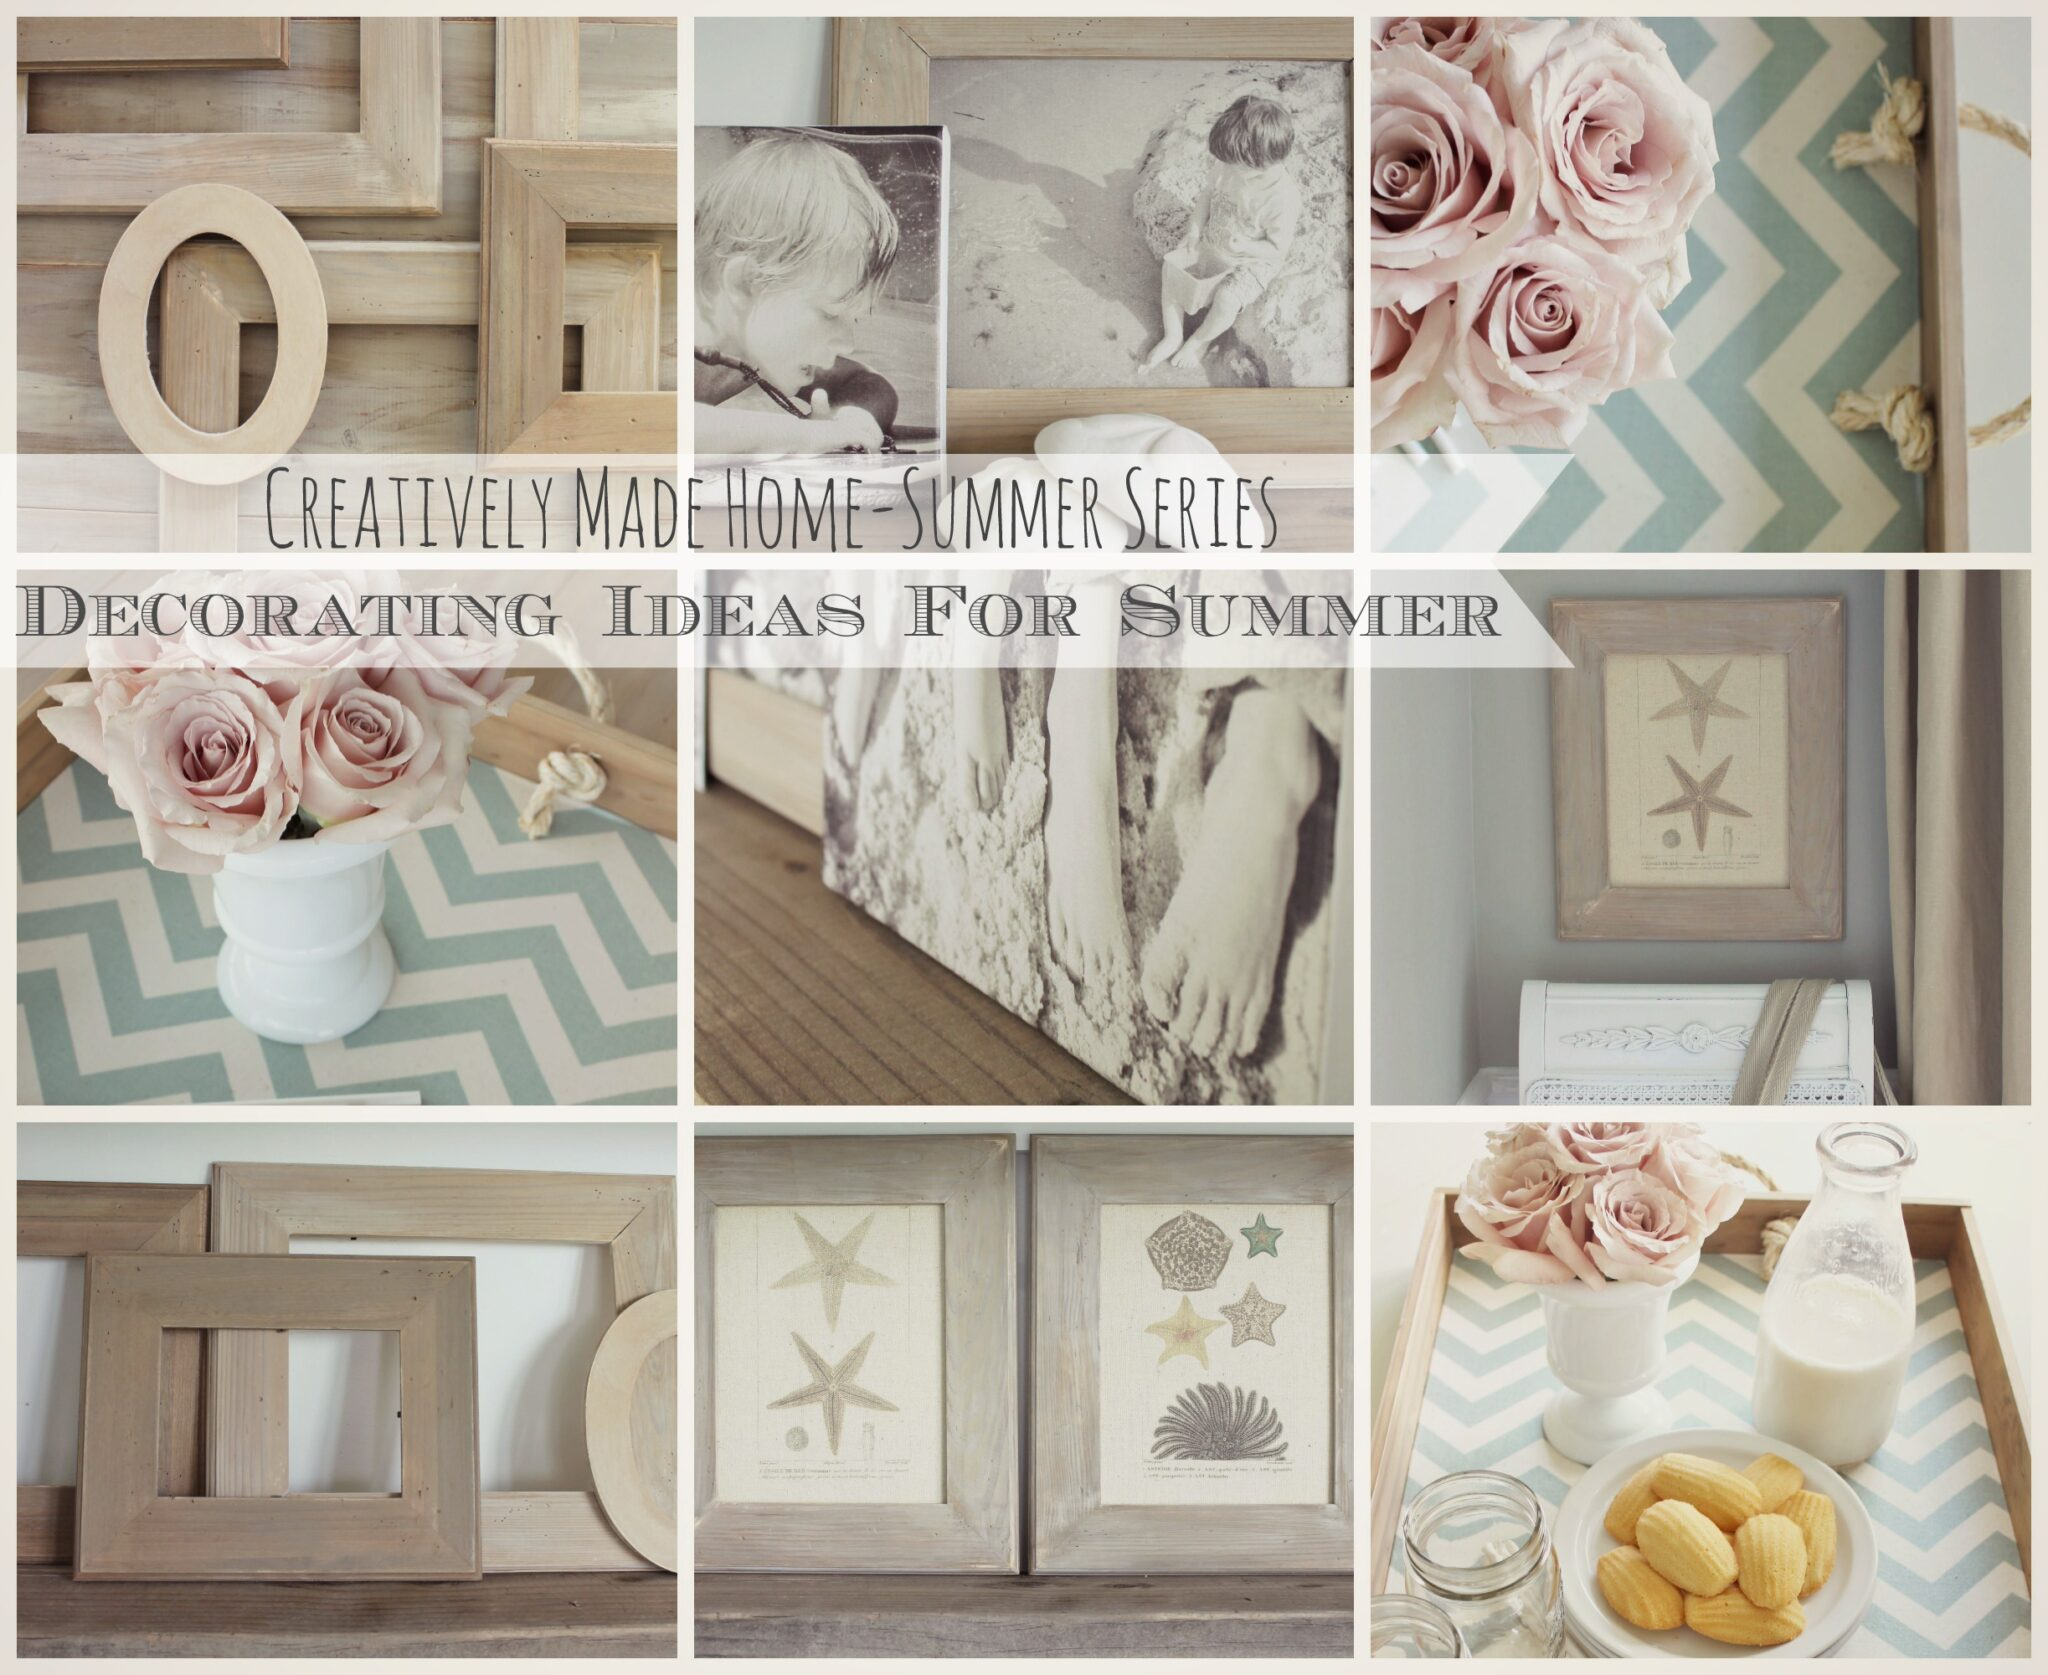 Decorating ideas for summer e course giveway city farmhouse for Summer decorations for the home